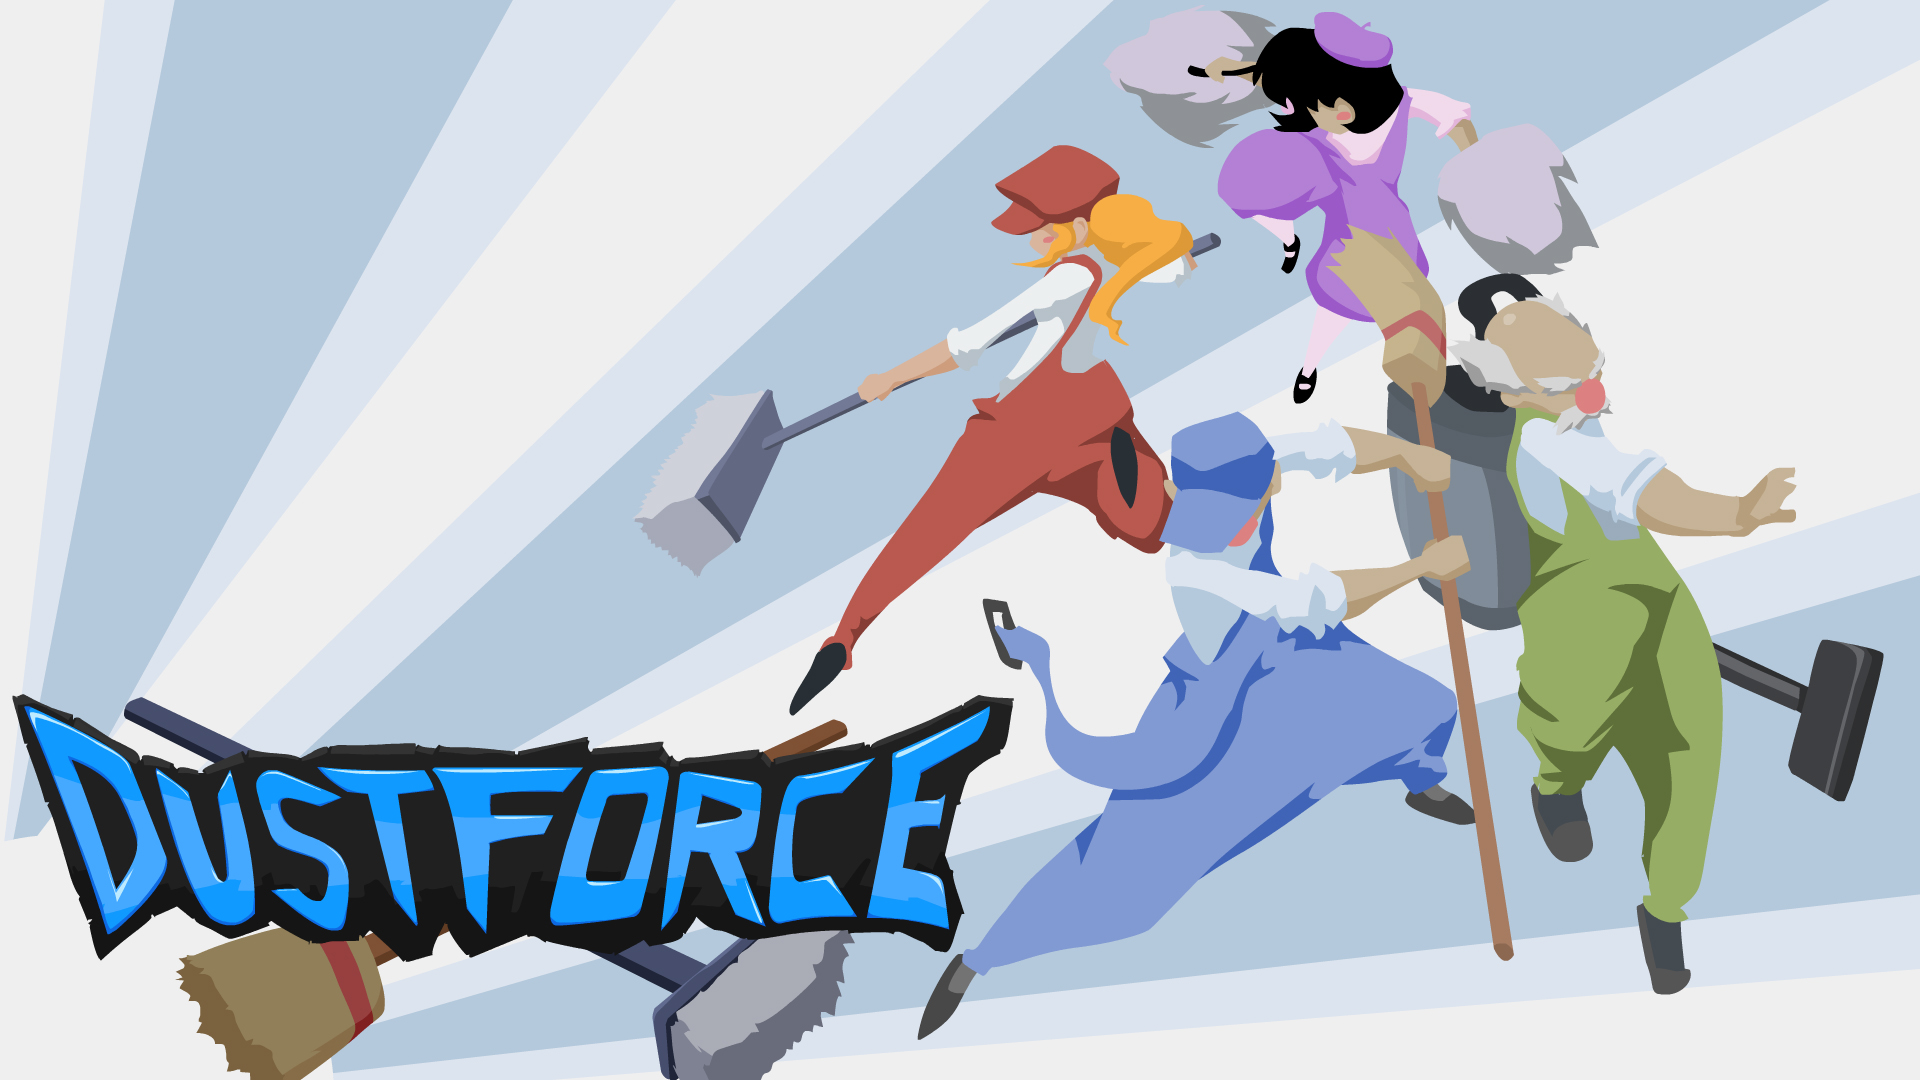 Dustforce